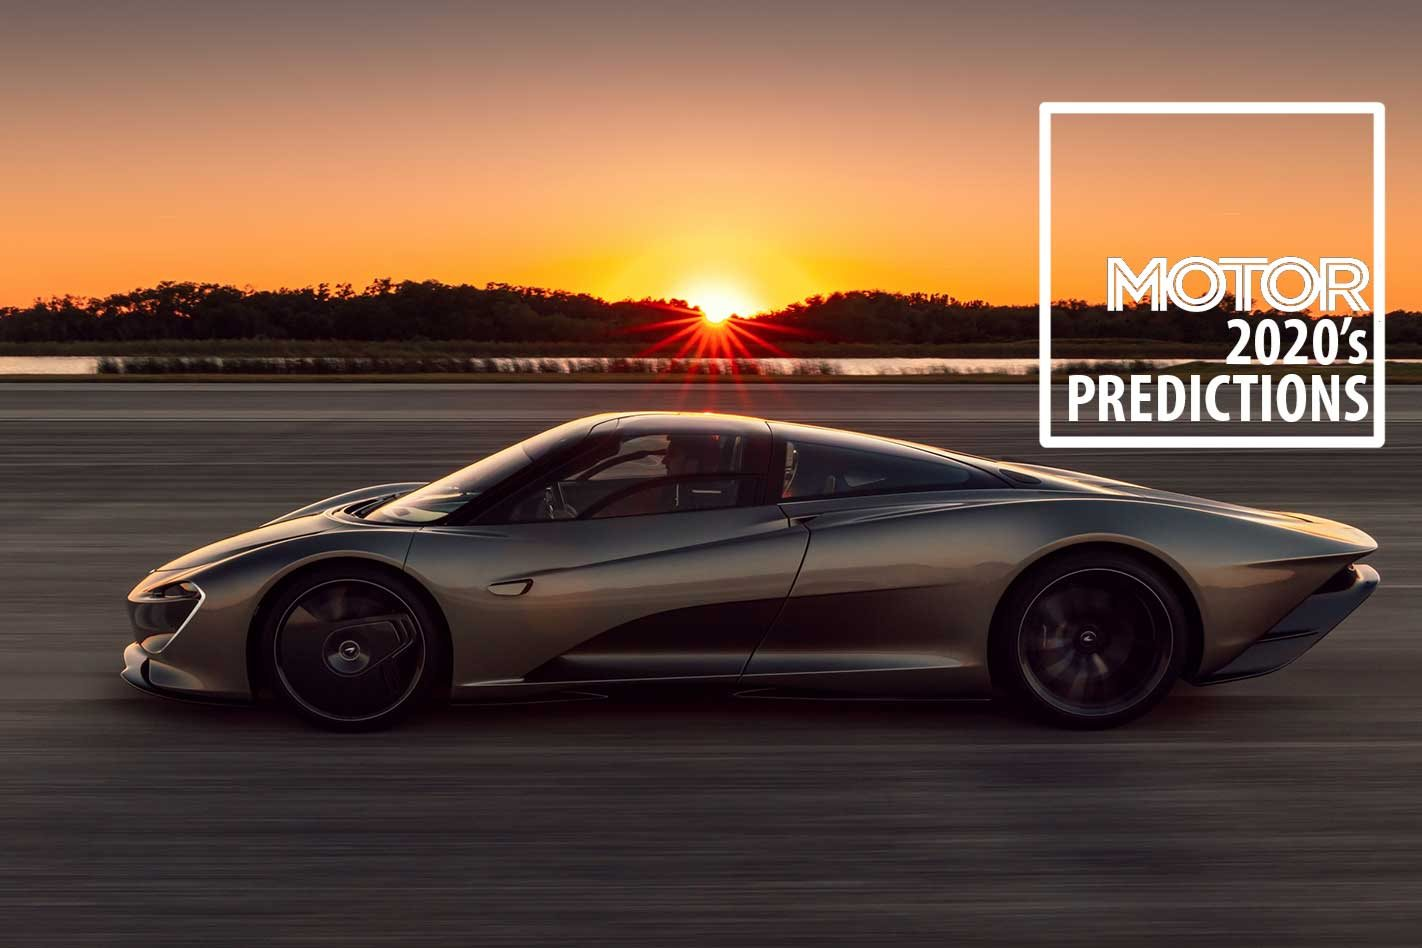 Performance car predictions for the 2020's